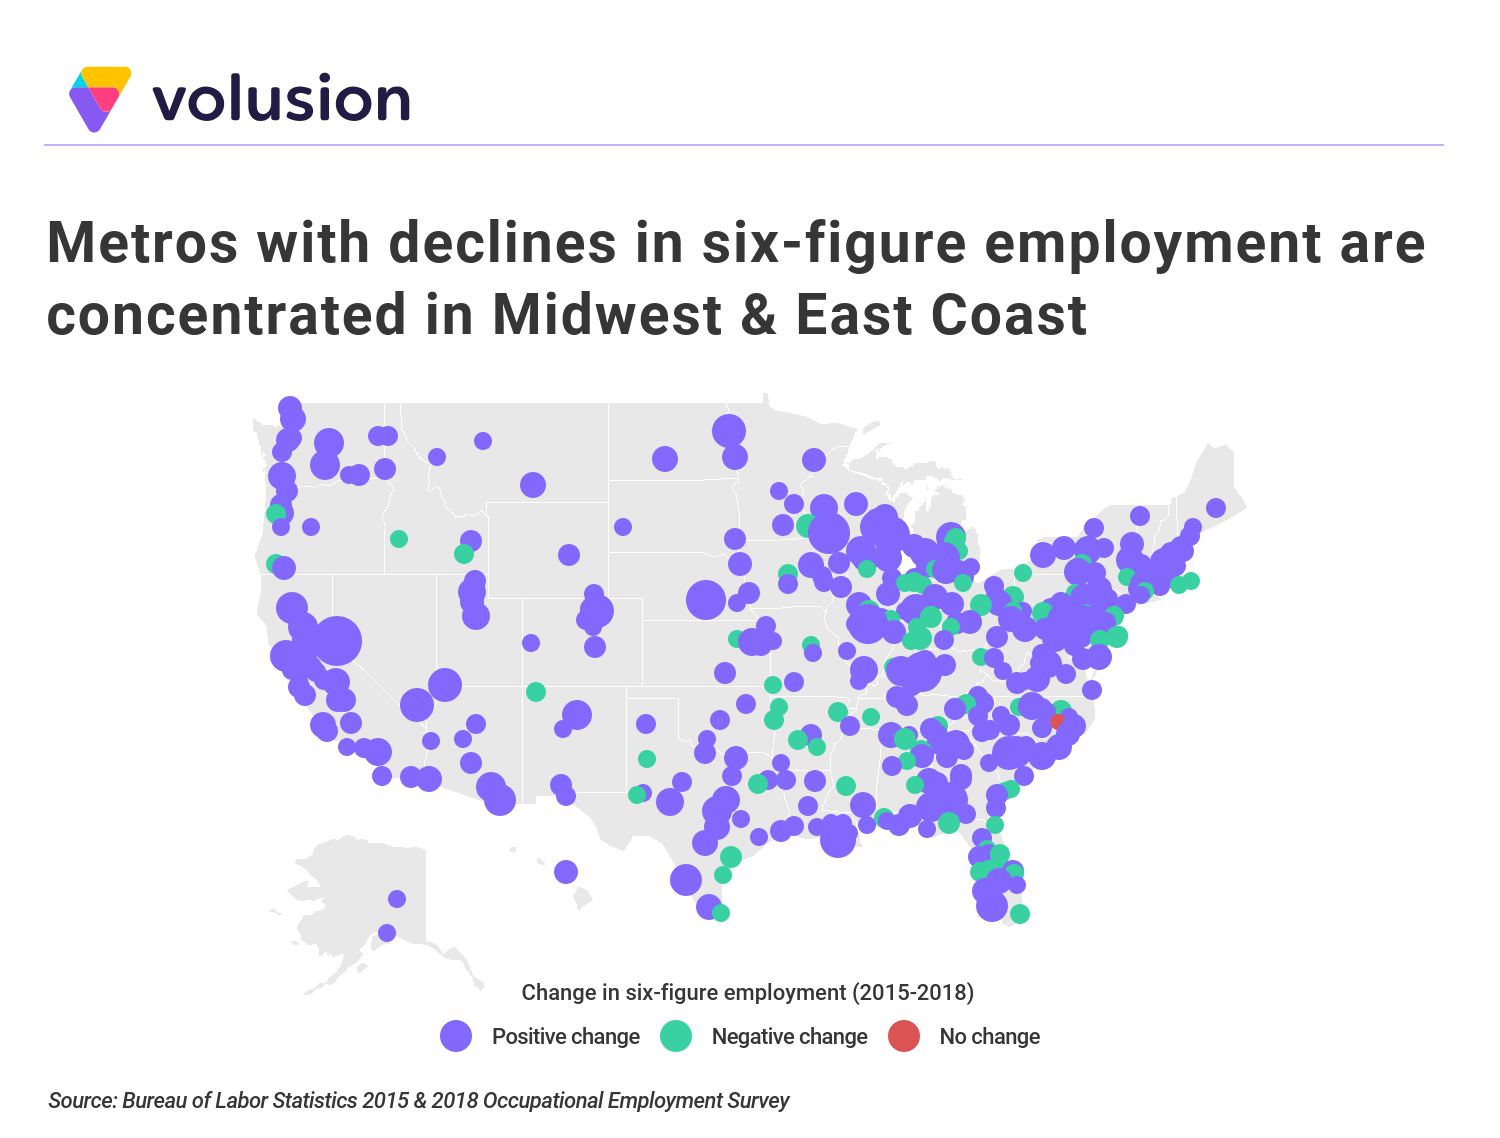 Heatmap of the U.S. showing positive and negative changes in the numbers of six-figure jobs from 2015-2018